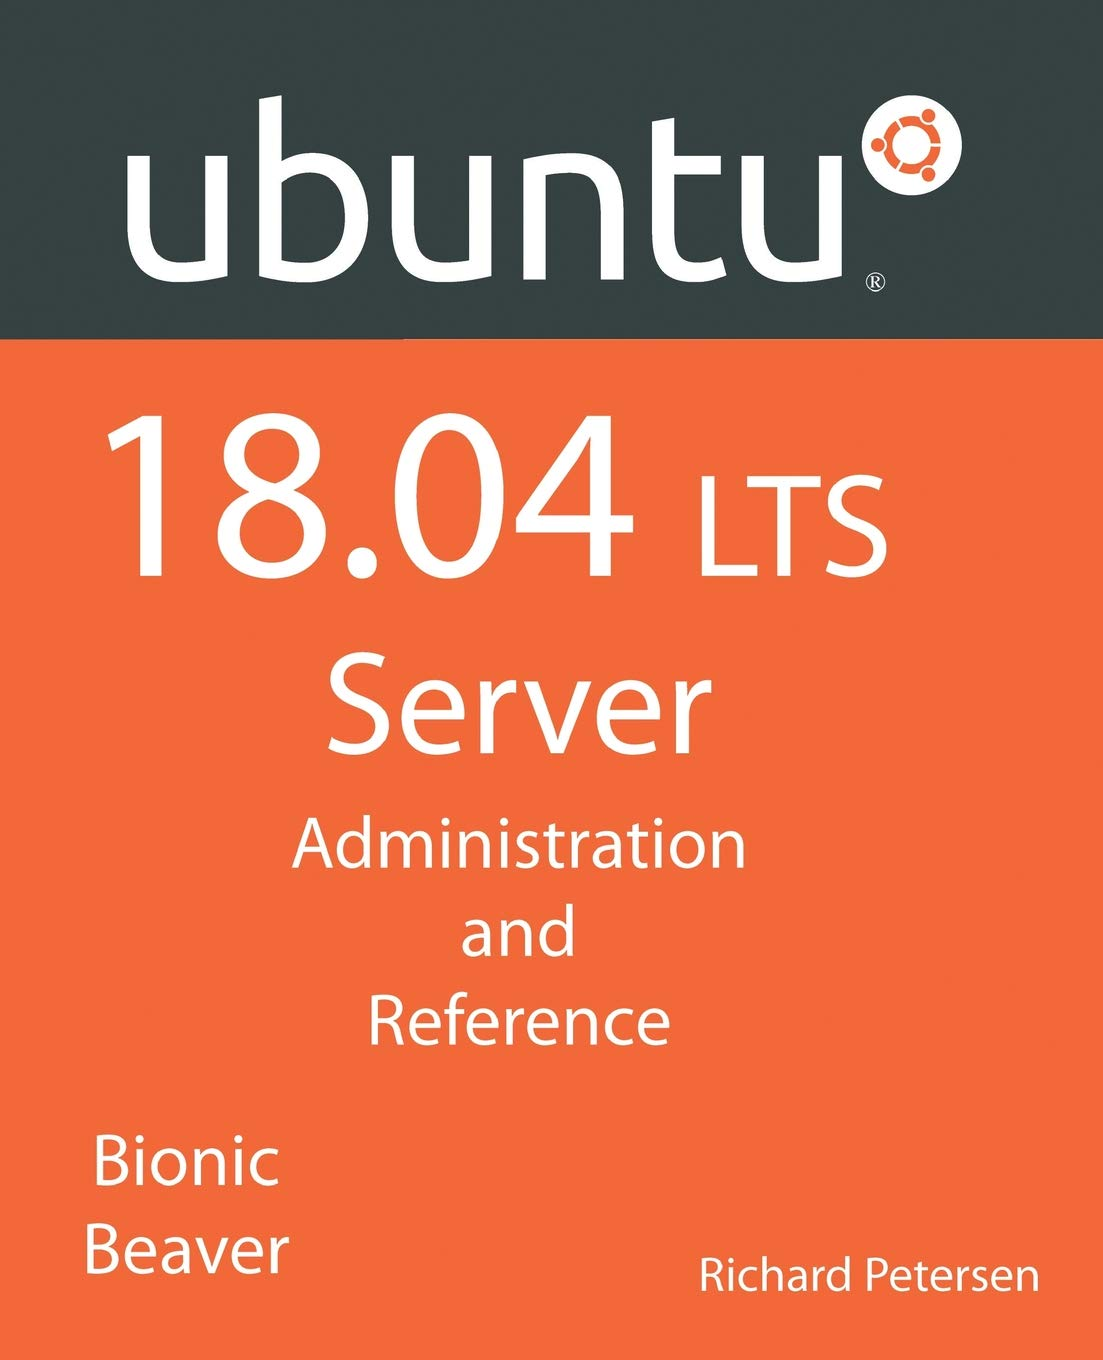 Ubuntu 18.04 LTS Server: Administration and Reference: Richard Petersen:  9781719322270: Amazon.com: Books